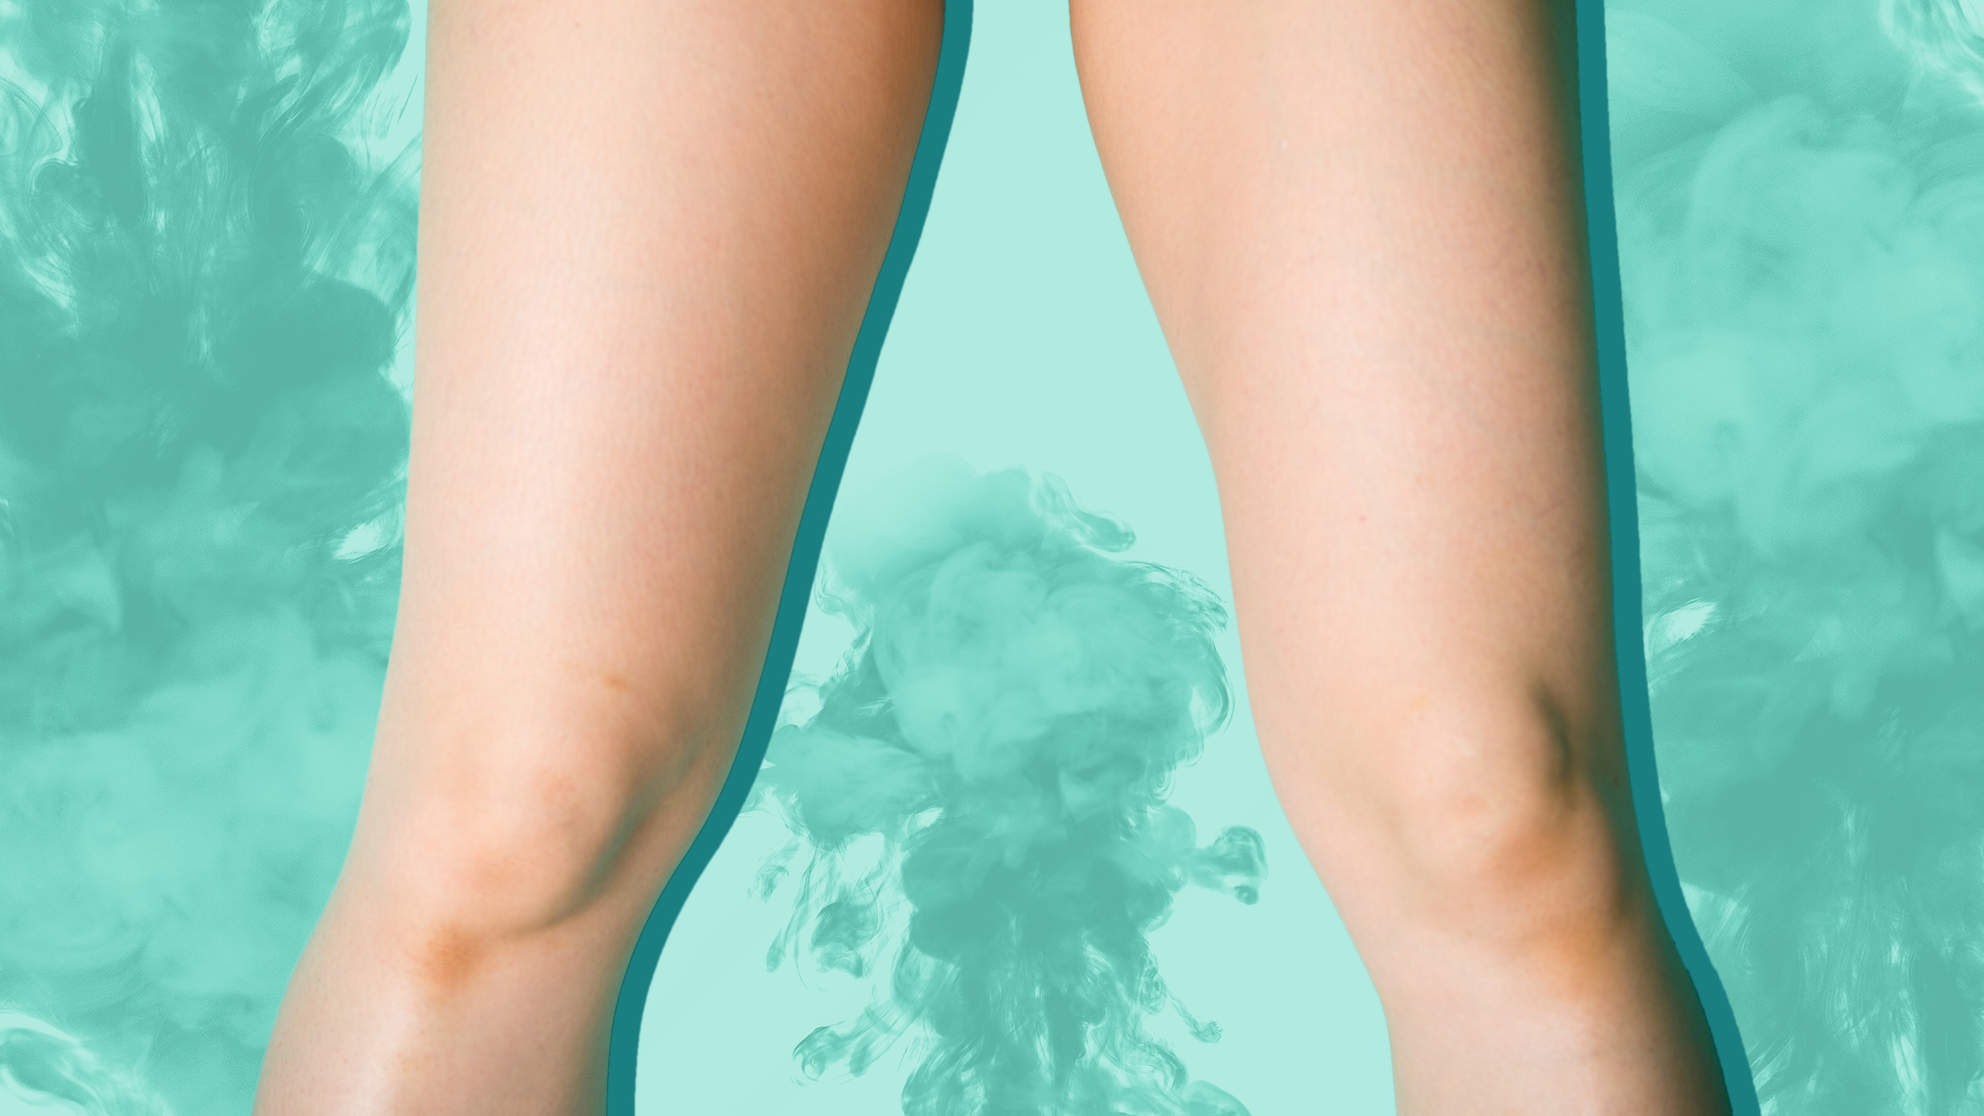 A Vaginal Steam Treatment Gave This Woman a Second-Degree Burn on Her Vagina